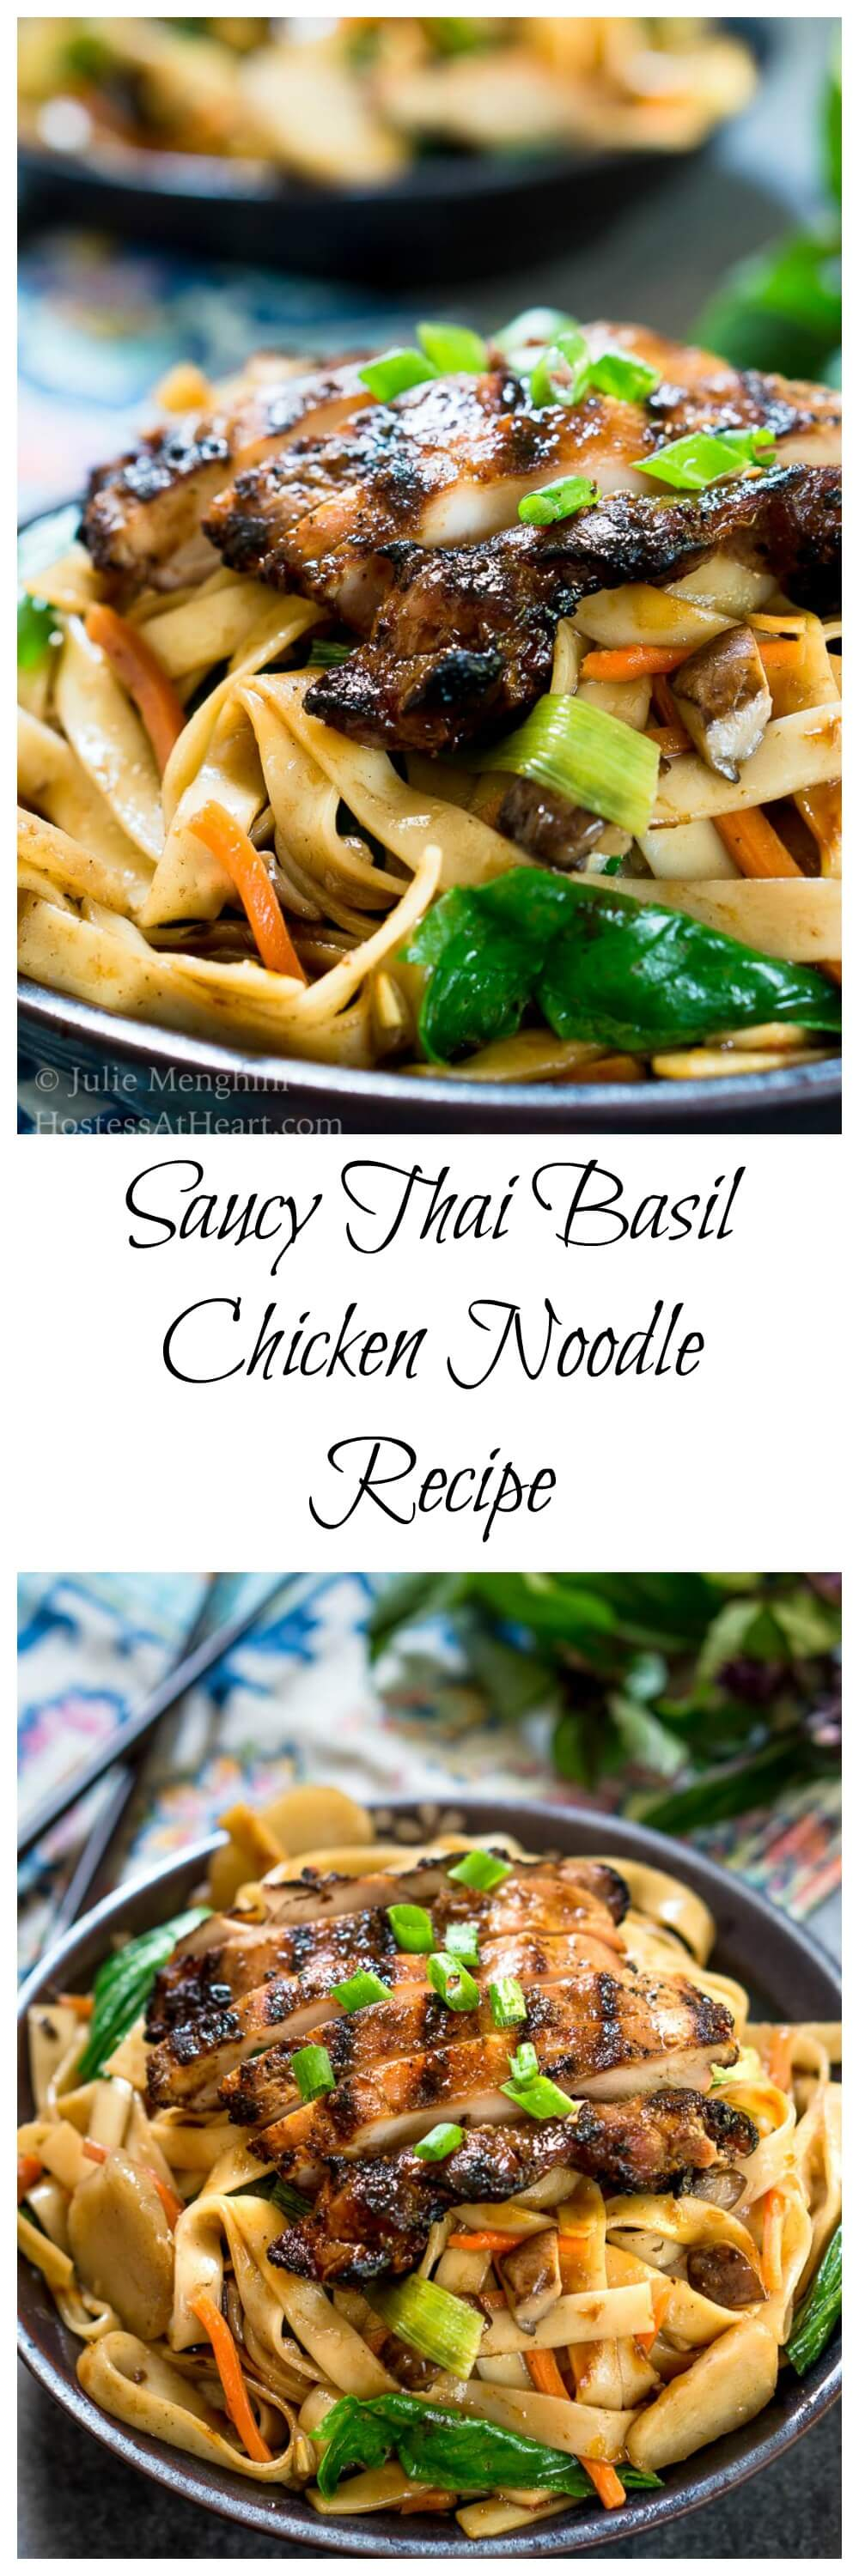 Saucy Thai Basil Chicken Noodle Bowl Recipe is a creamy blend of Asian flavors.  It's a little bit sweet and spicy and a whole bunch delicious! | HostessAtHeart.com | easy Thai basil | easy dinner recipes | chicken #healthyfood #maindish